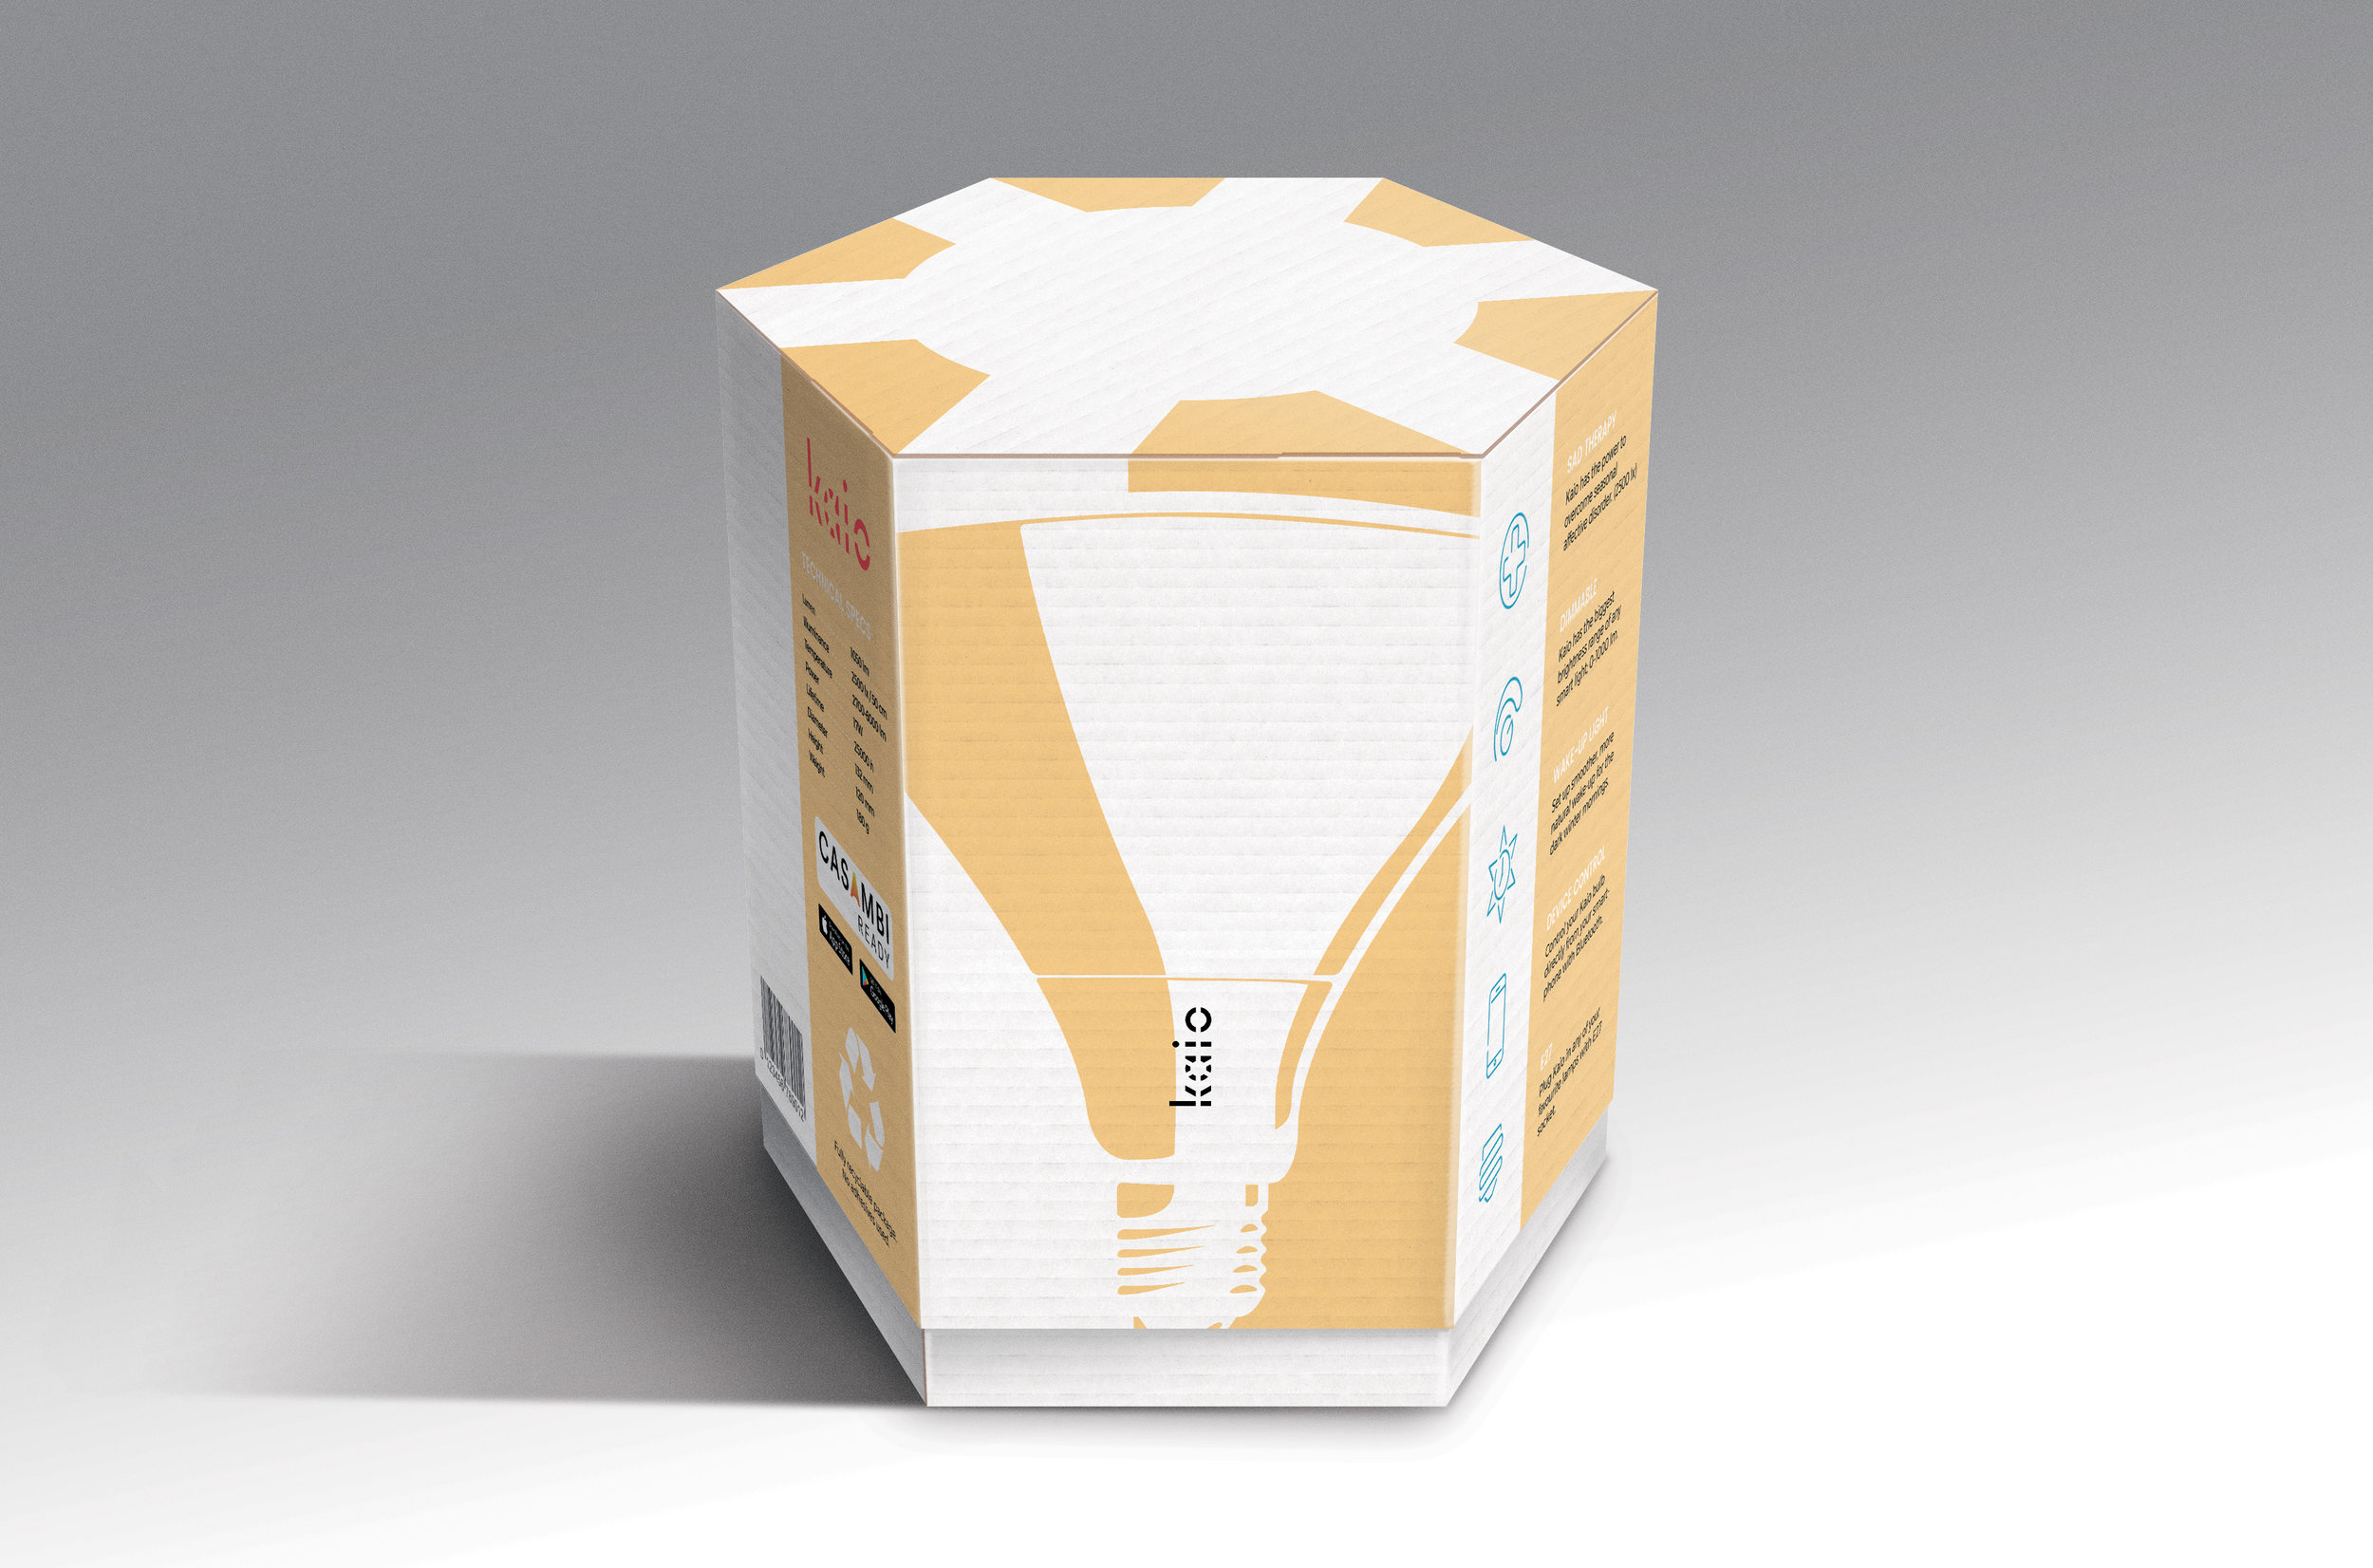 The final package design uses the bulb as a graphic element together with a shape symbolising the sun. This image is a photoshop rendering of the package.